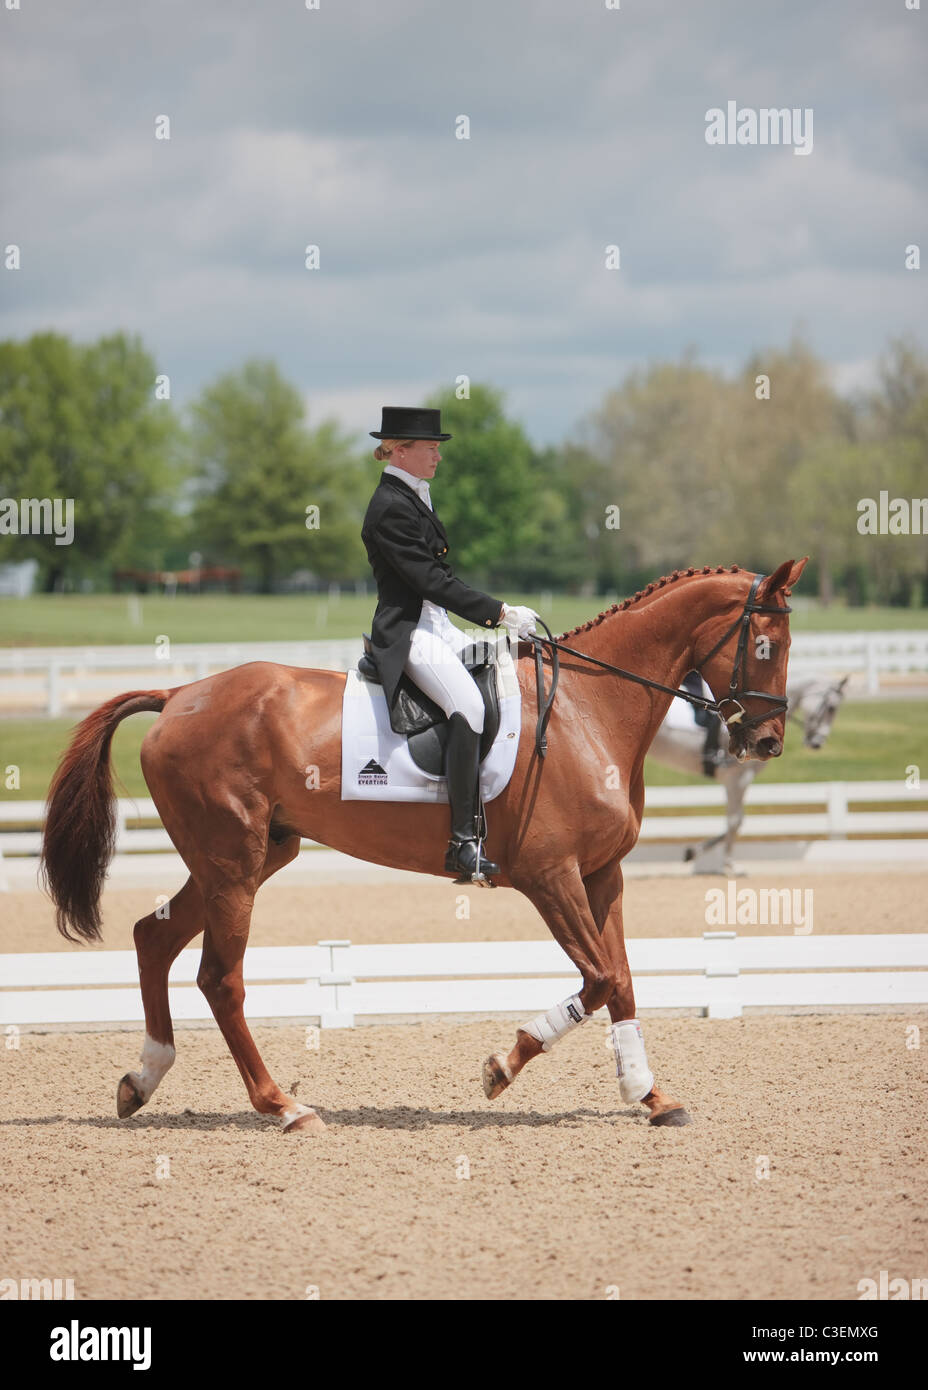 Preparing for the dressage competition at the Rolex Three Day Eventing competition in Lexington, Kentucky. - Stock Image